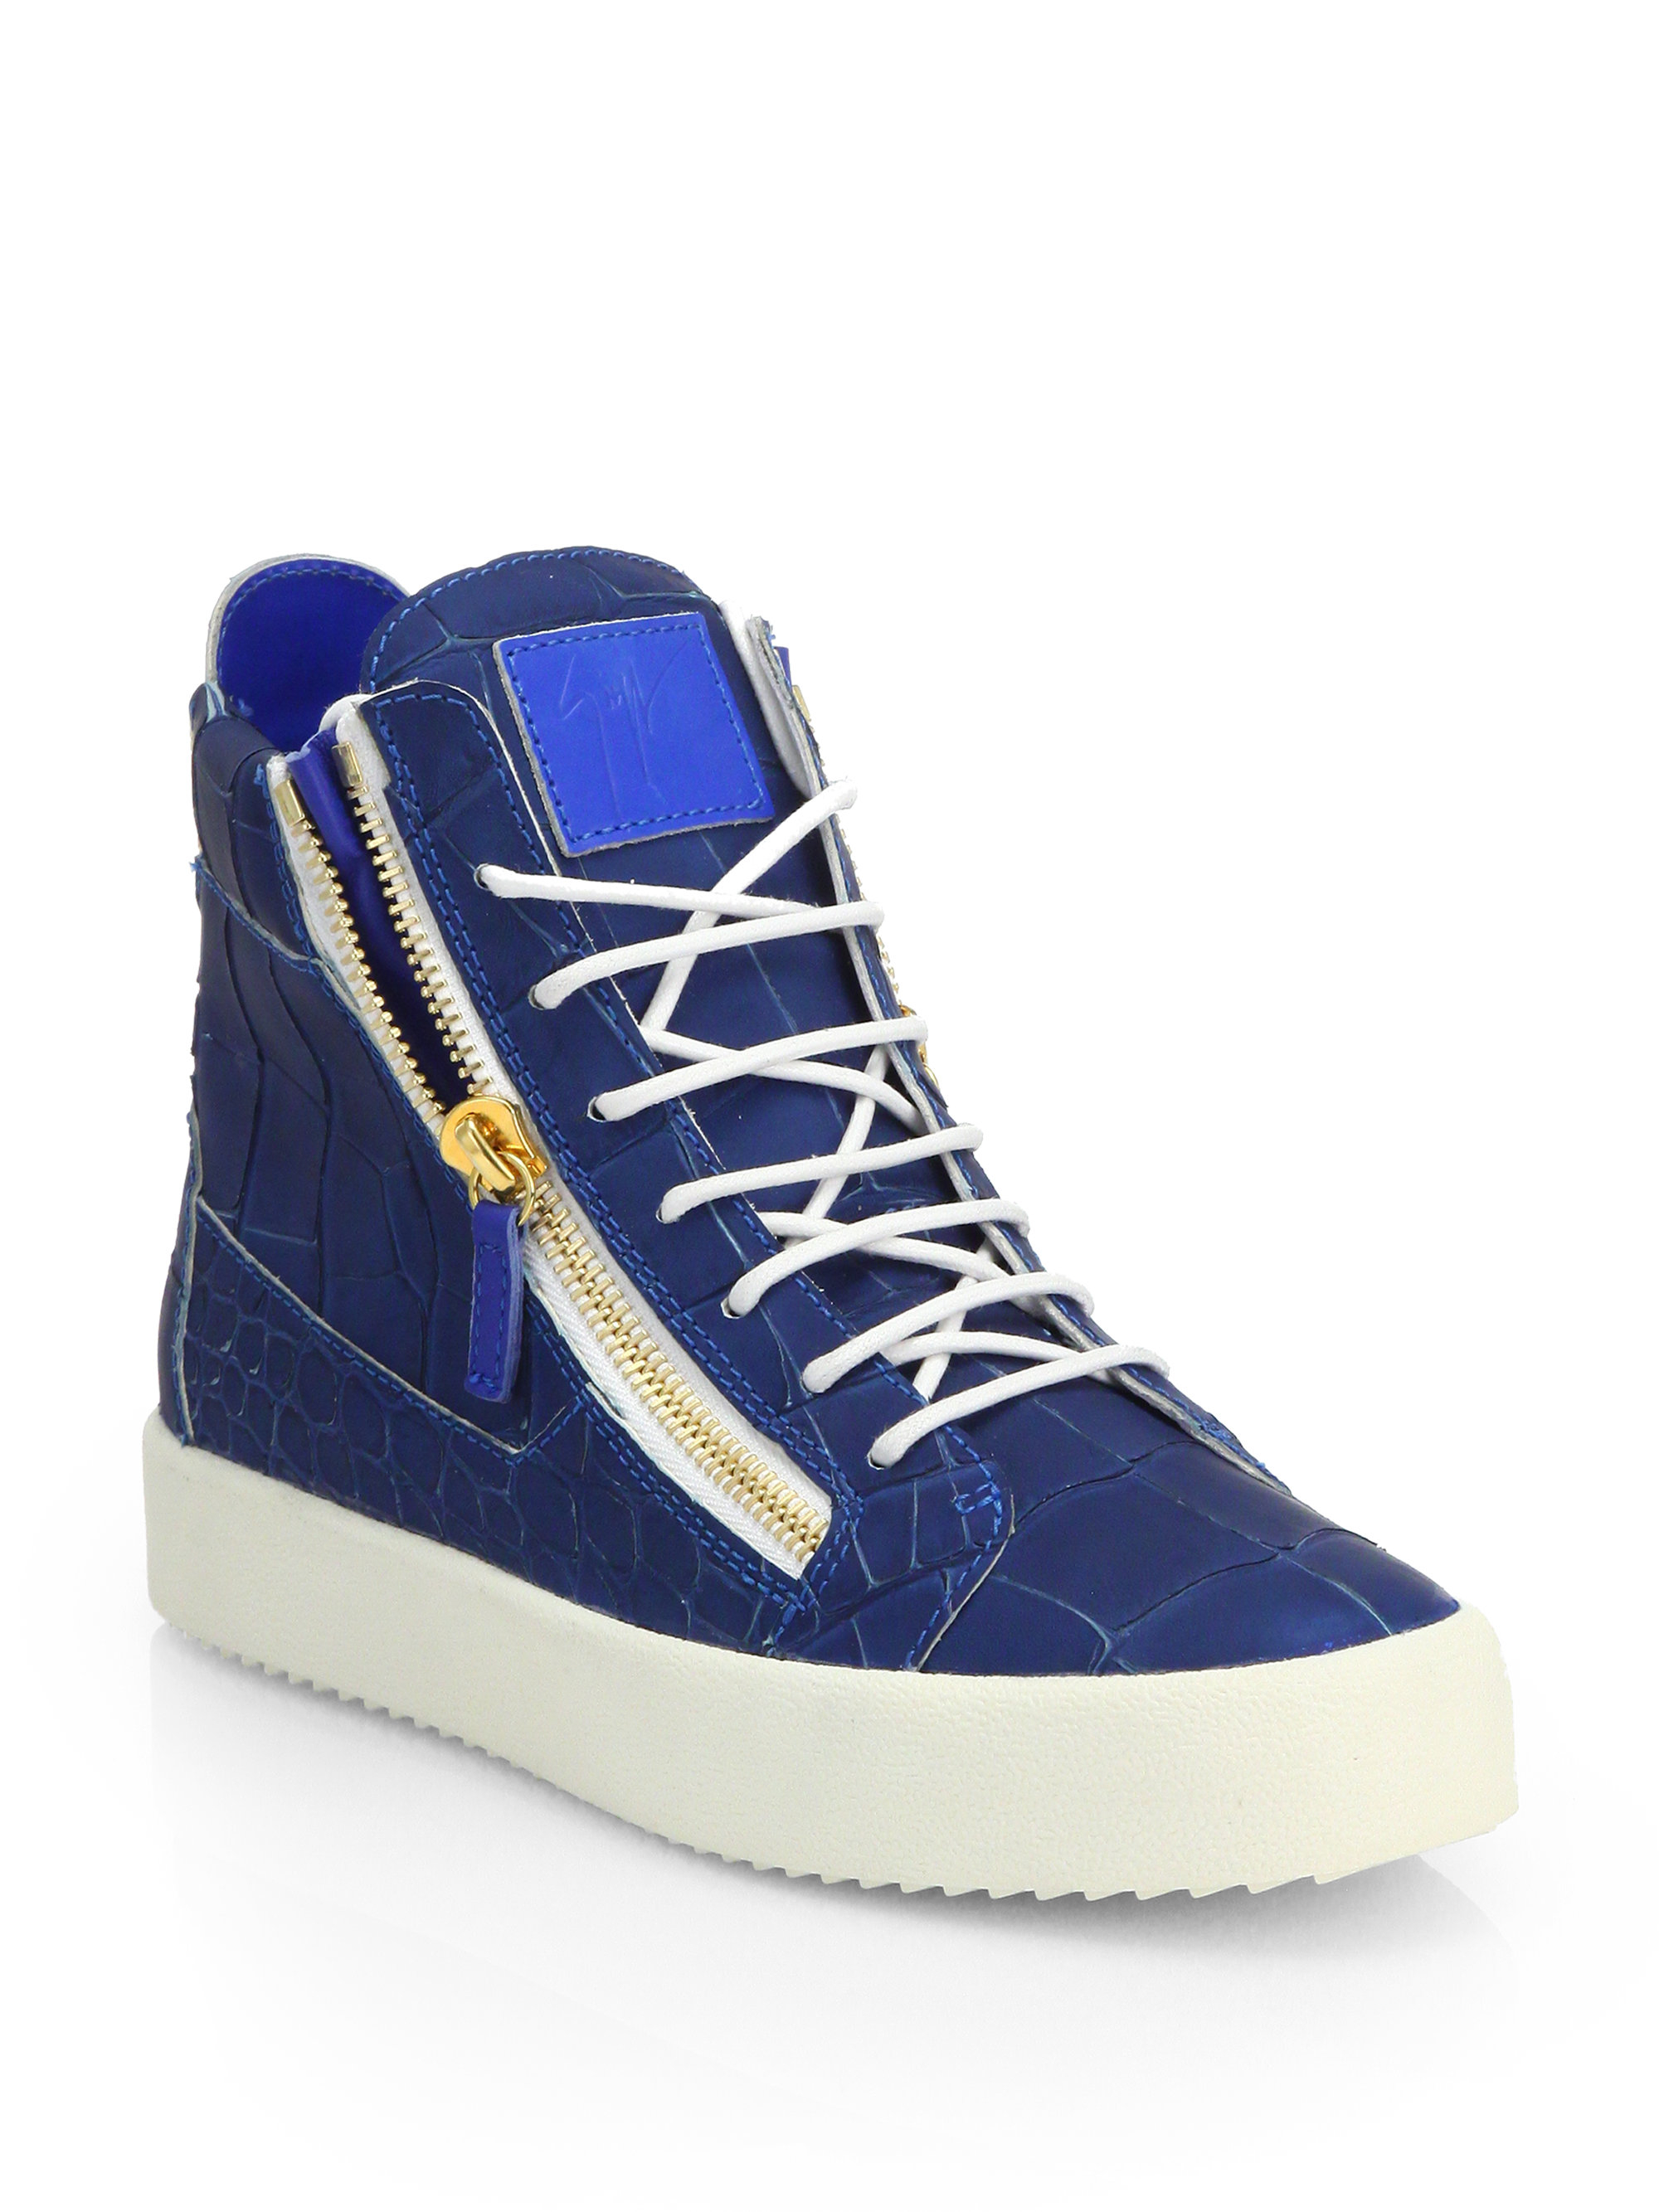 Giuseppe zanotti Croc-embossed Leather High-top Sneakers ...